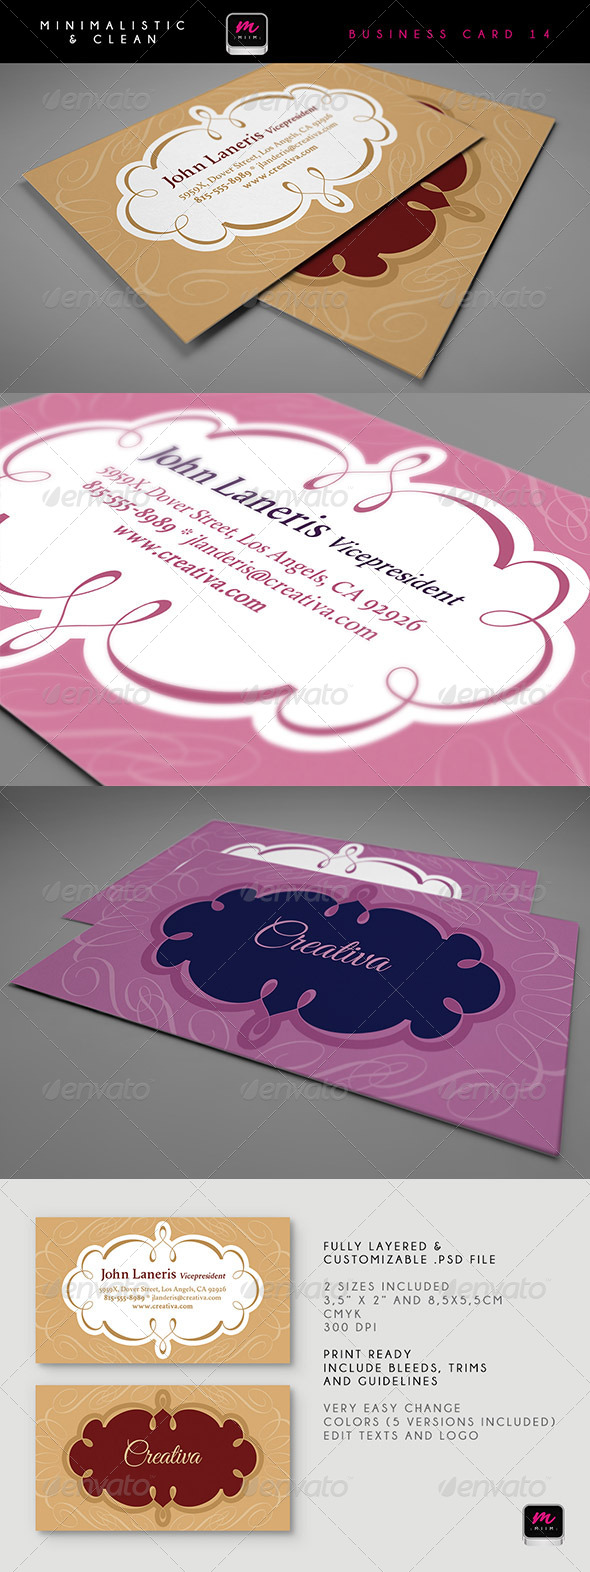 GraphicRiver Clean Business Card Template 14 6074734